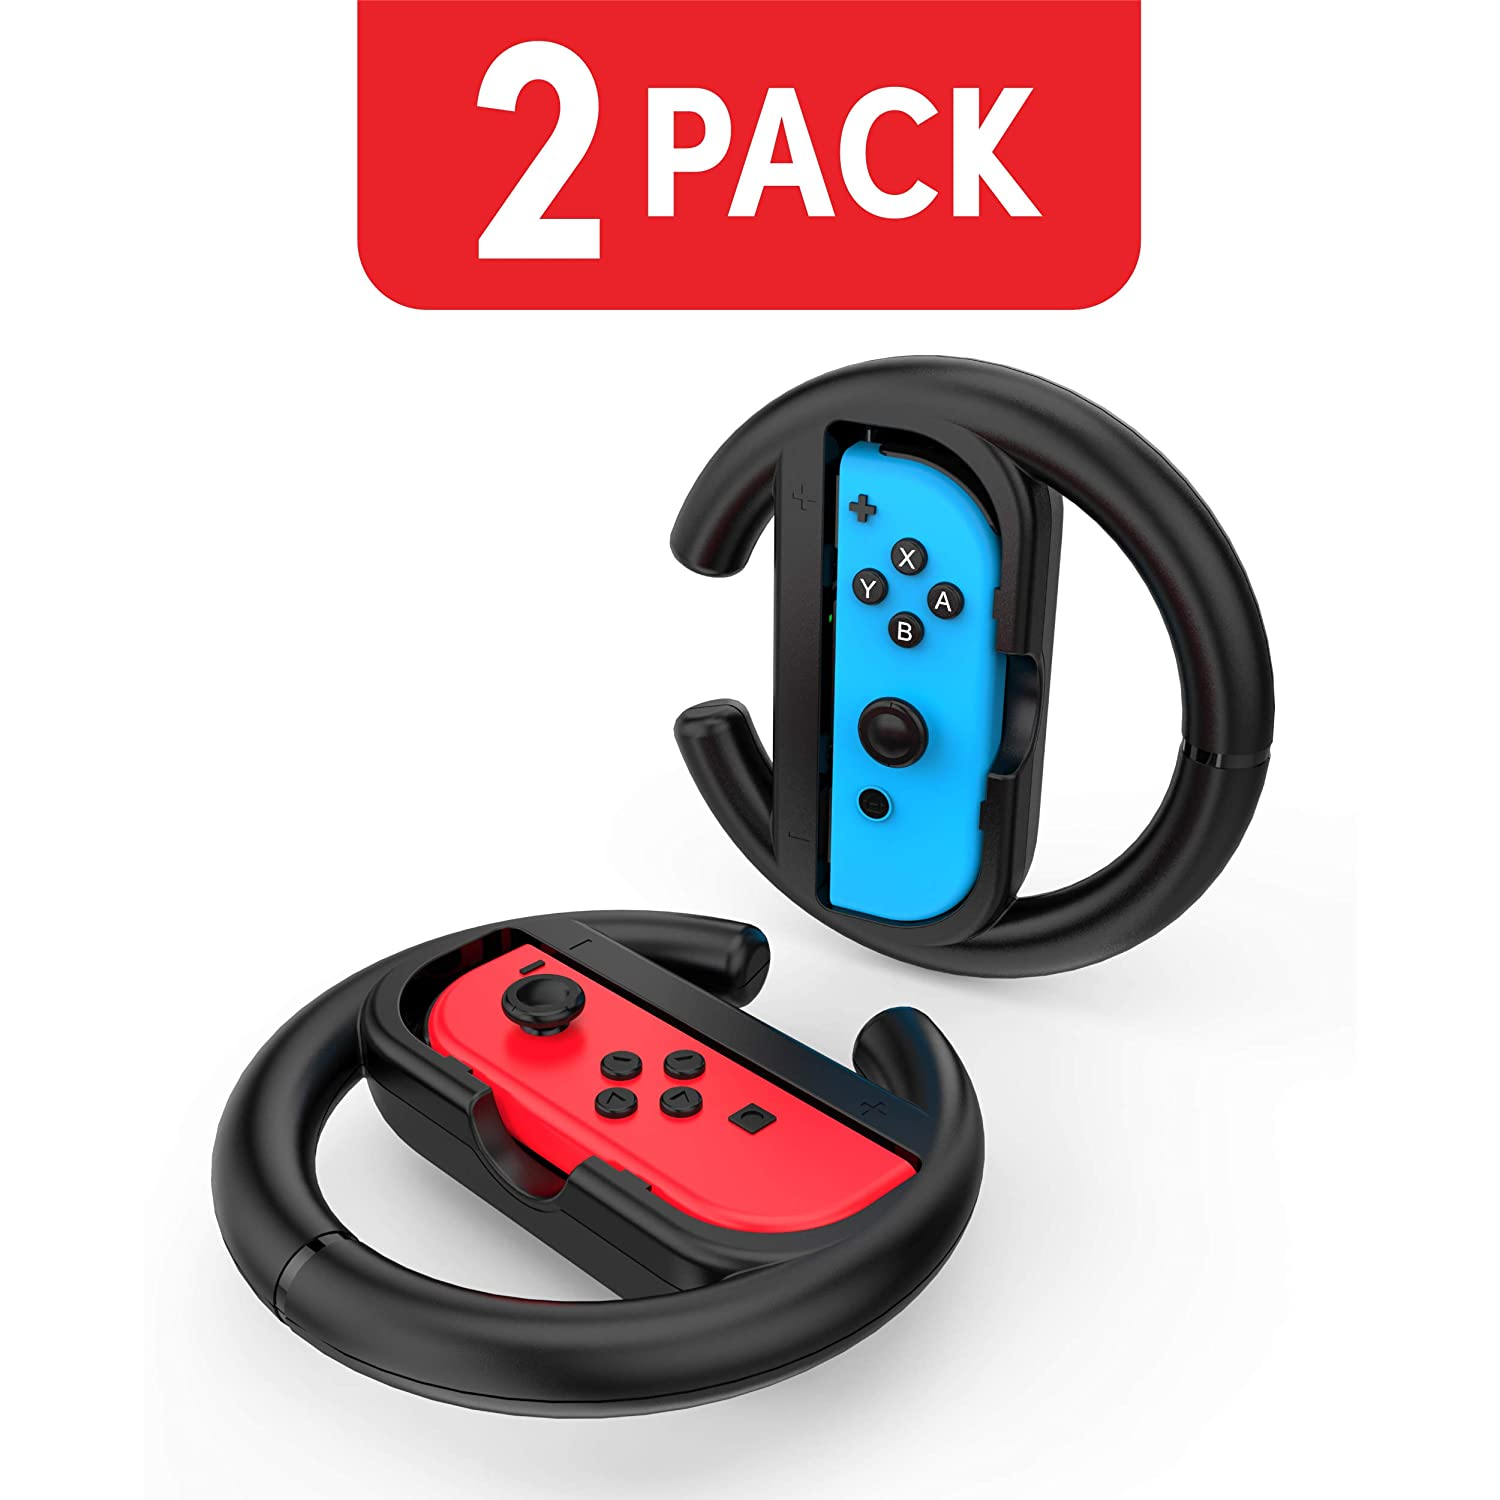 Steering Wheel Controller for Nintendo Switch (2 Pack) by TalkWorks | Racing Games Accessories Joy Con Controller Grip for Mario Kart, Black: Video Games